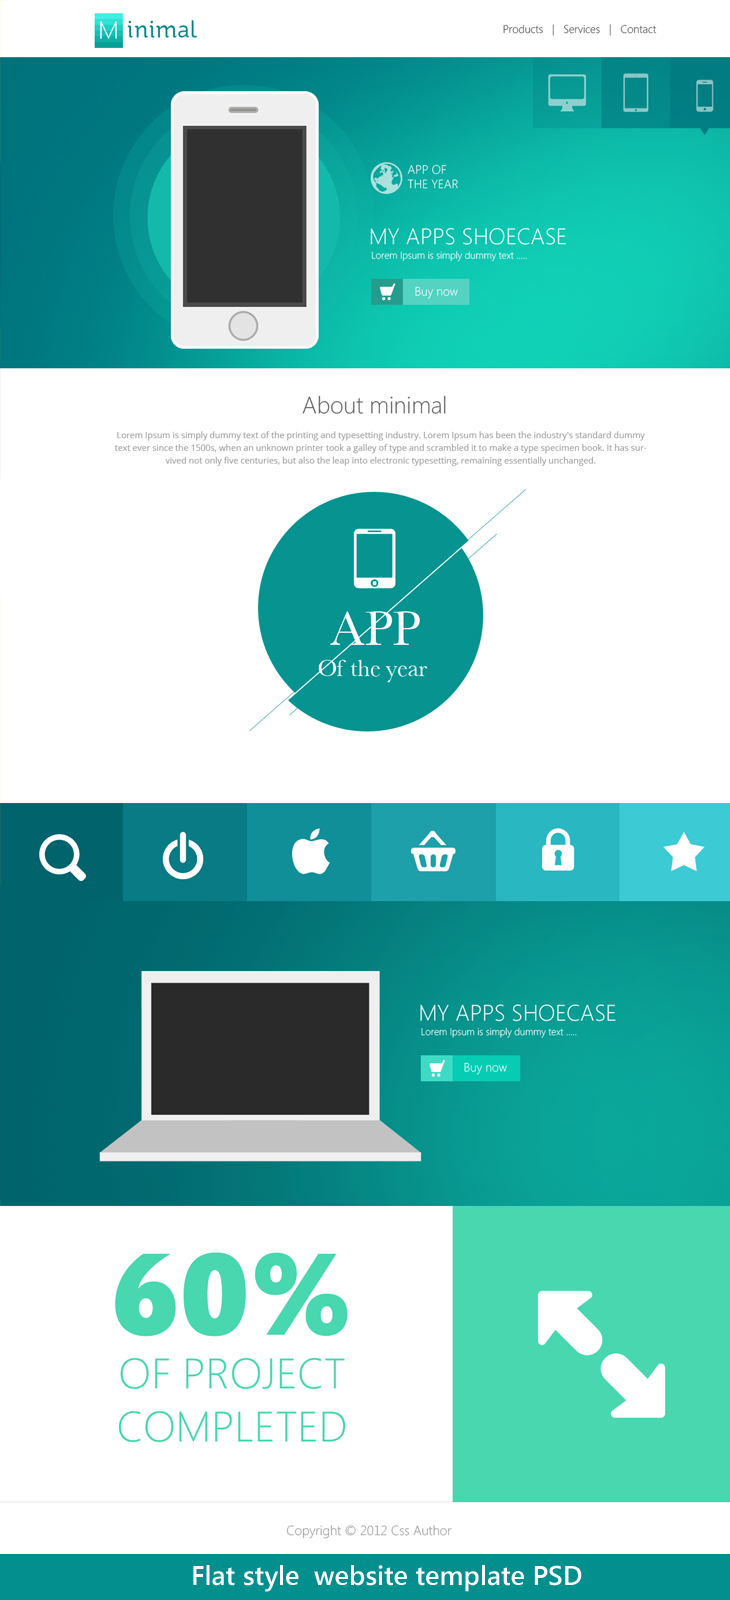 Flat Style Website Template PSD for Free Download - cssauthor.com ...